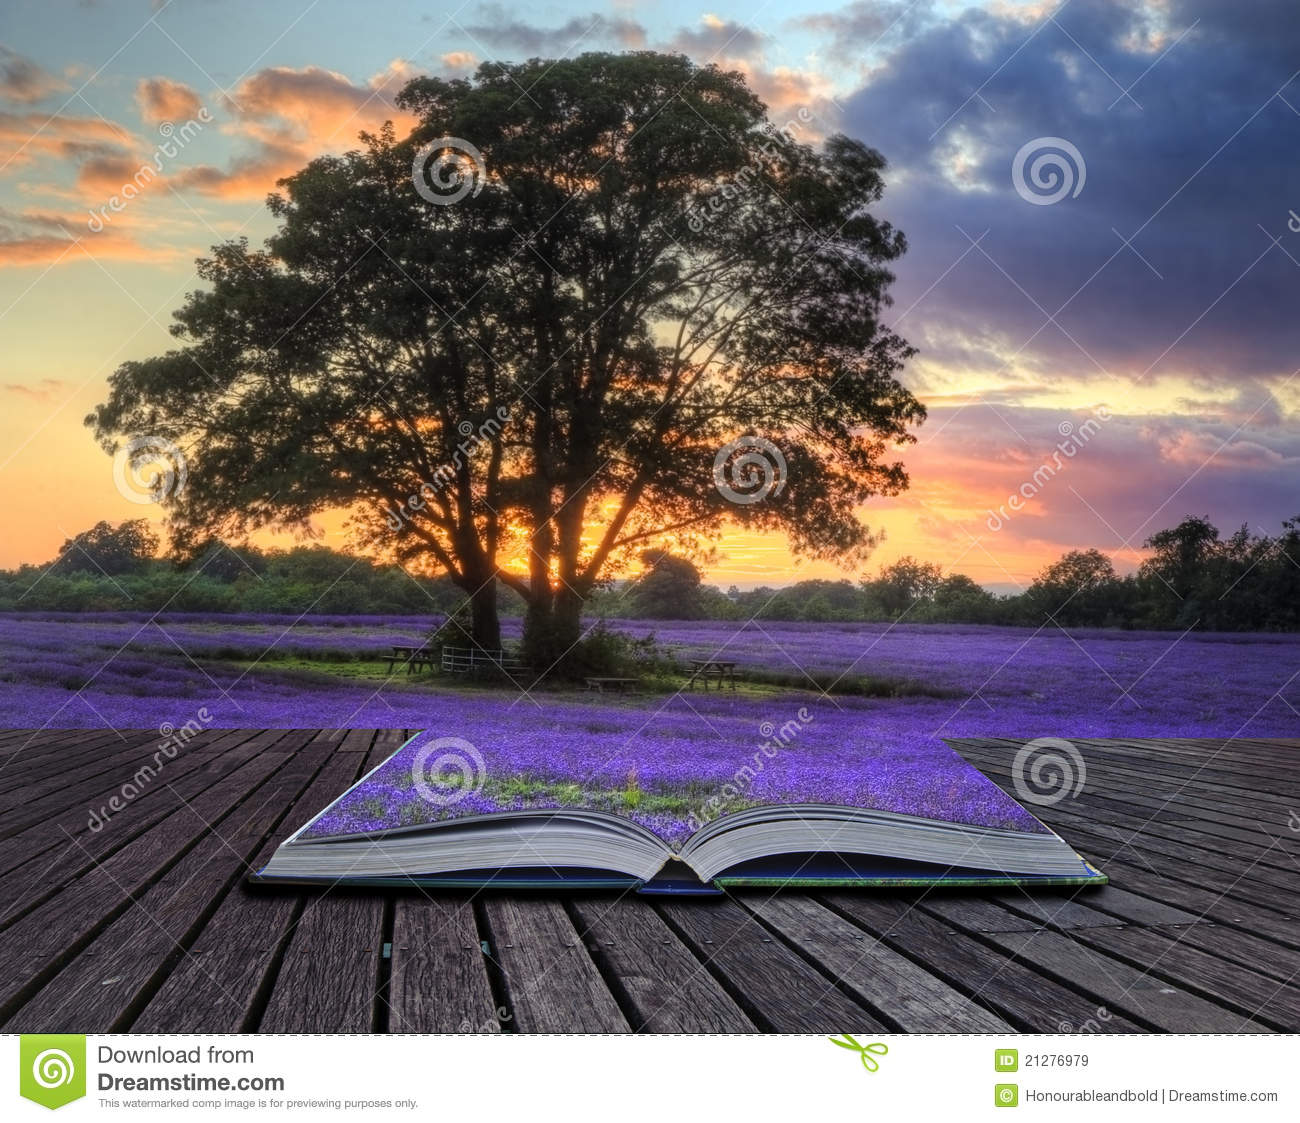 Creative concept image of lavender in sunset